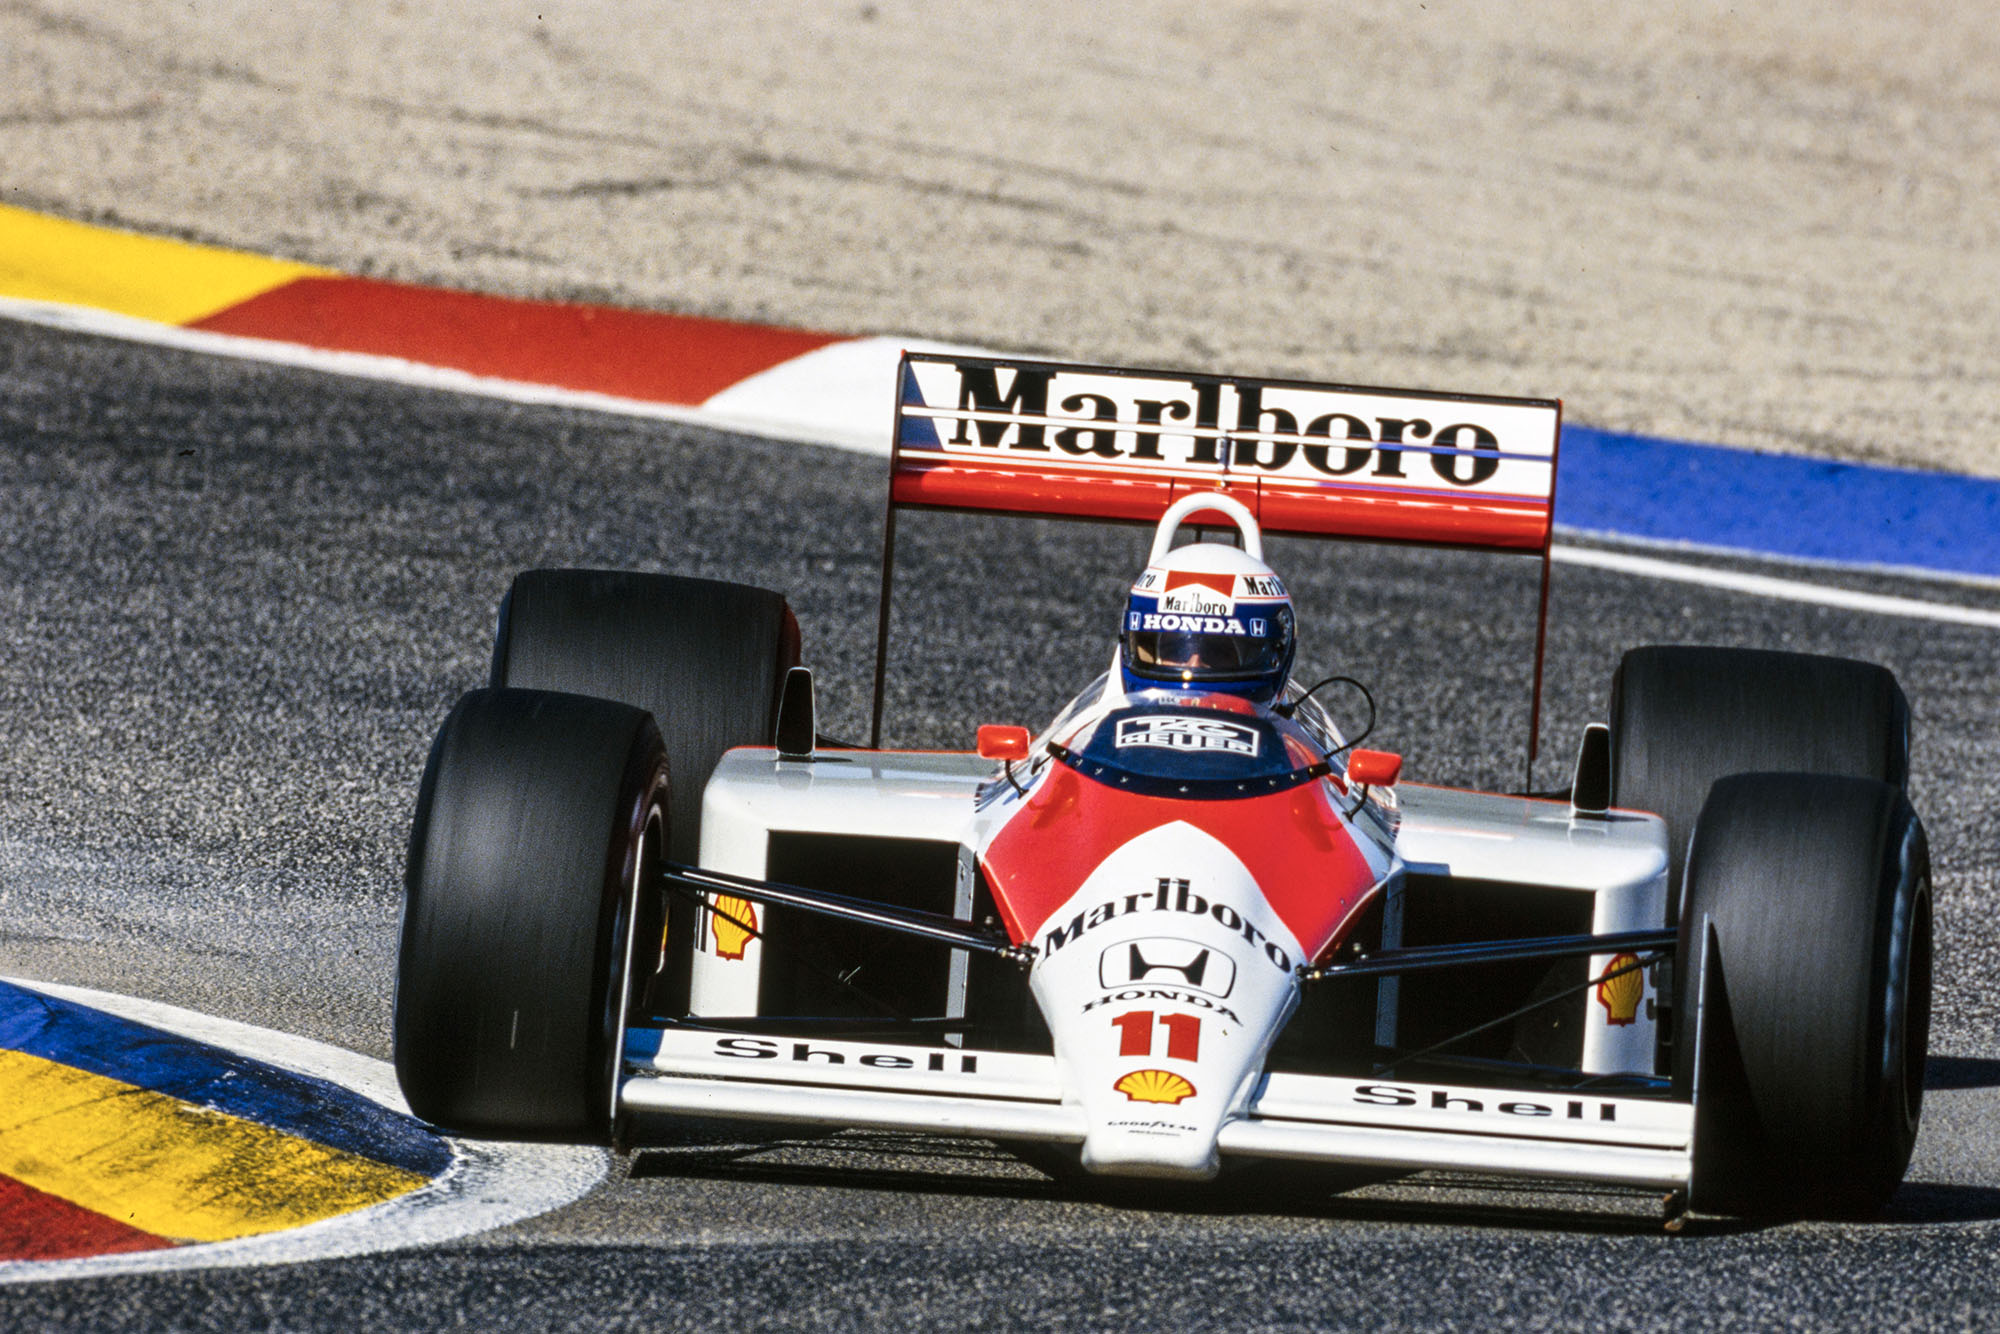 1988 FRA GP feature